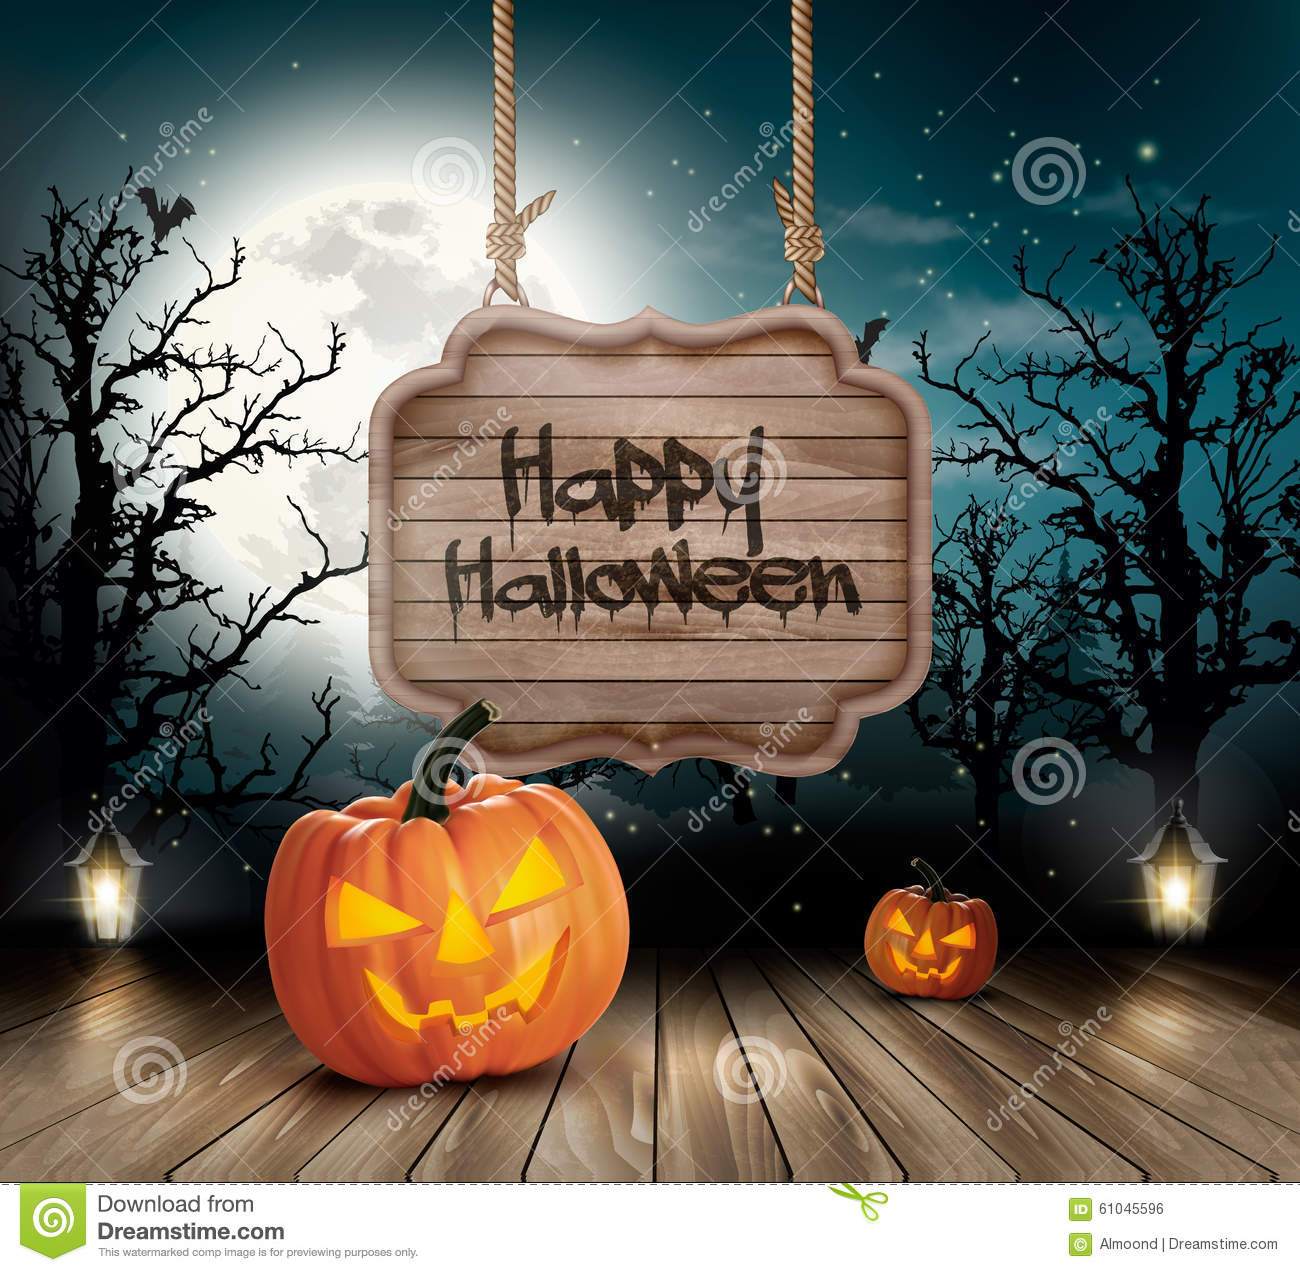 Scary Halloween background with a wooden sign.